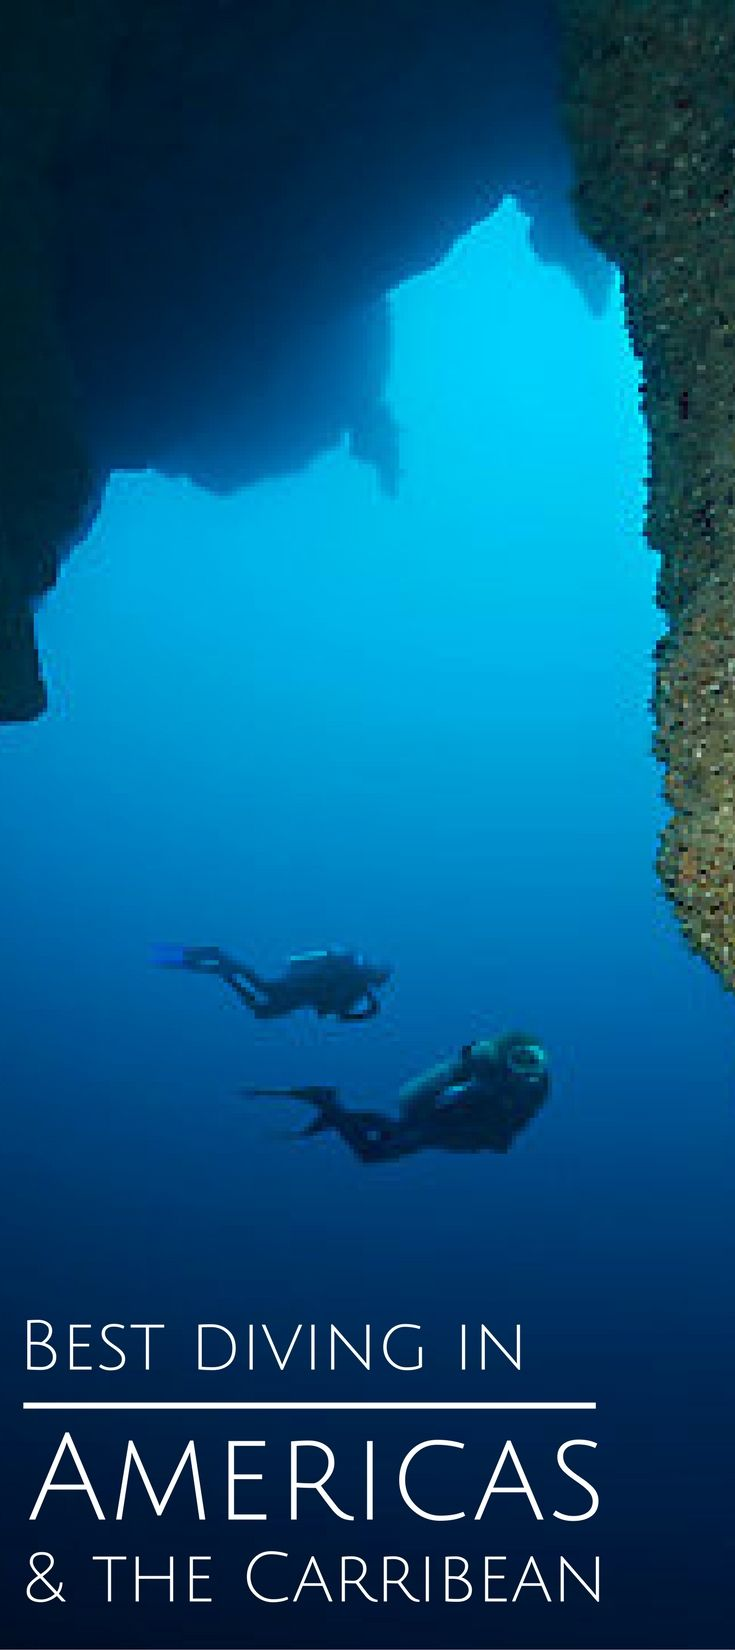 Best Diving In Americas & The Caribbean